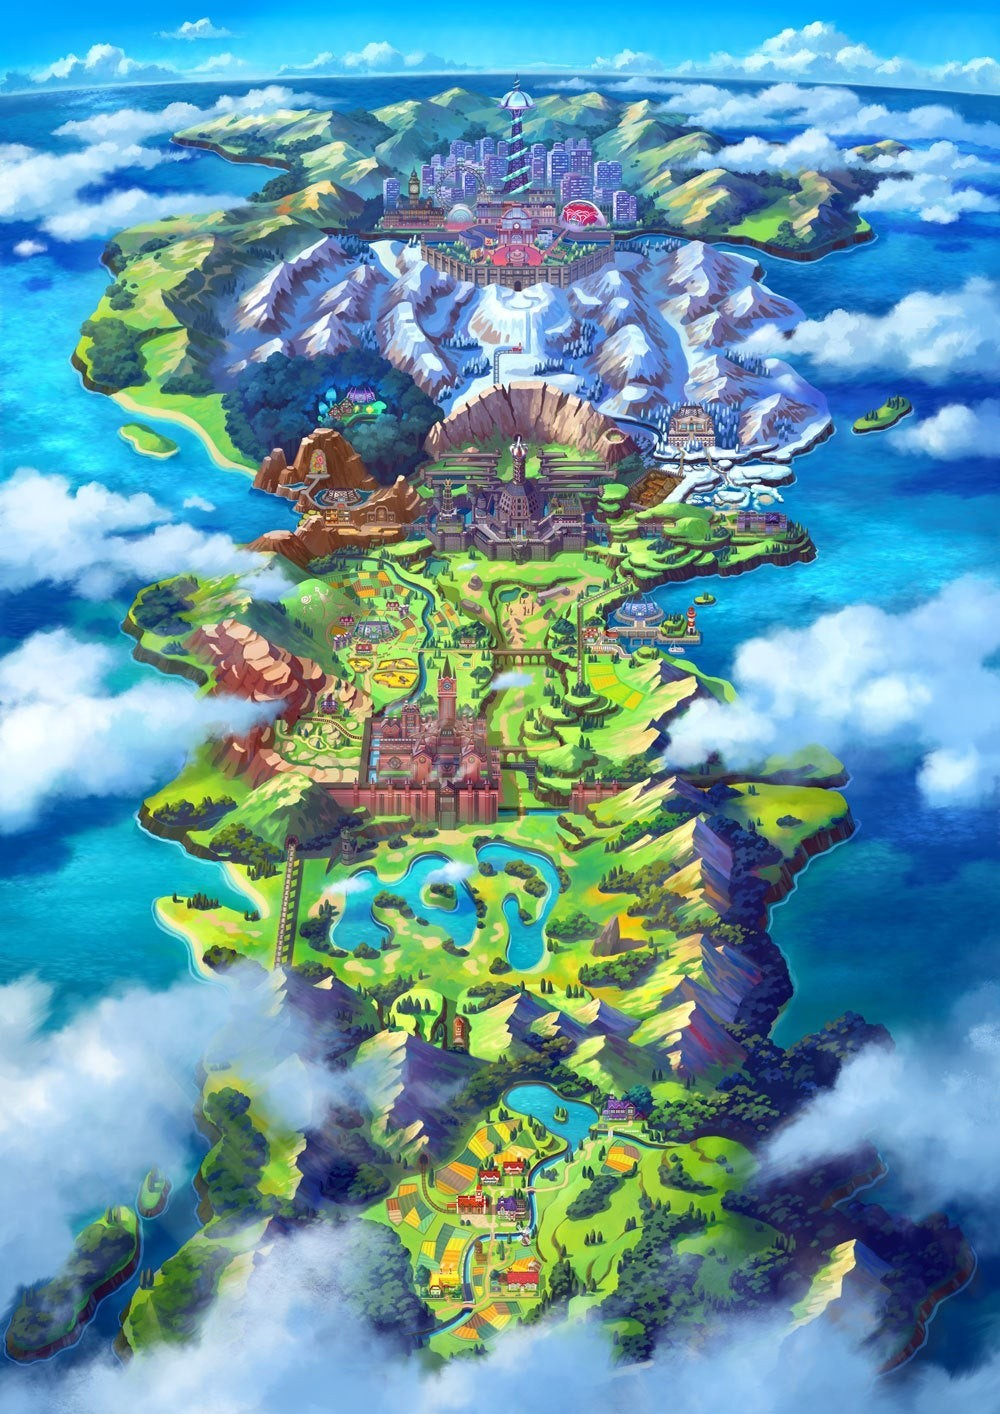 How big is the world map in Pokemon Sword & Shield? | iMore